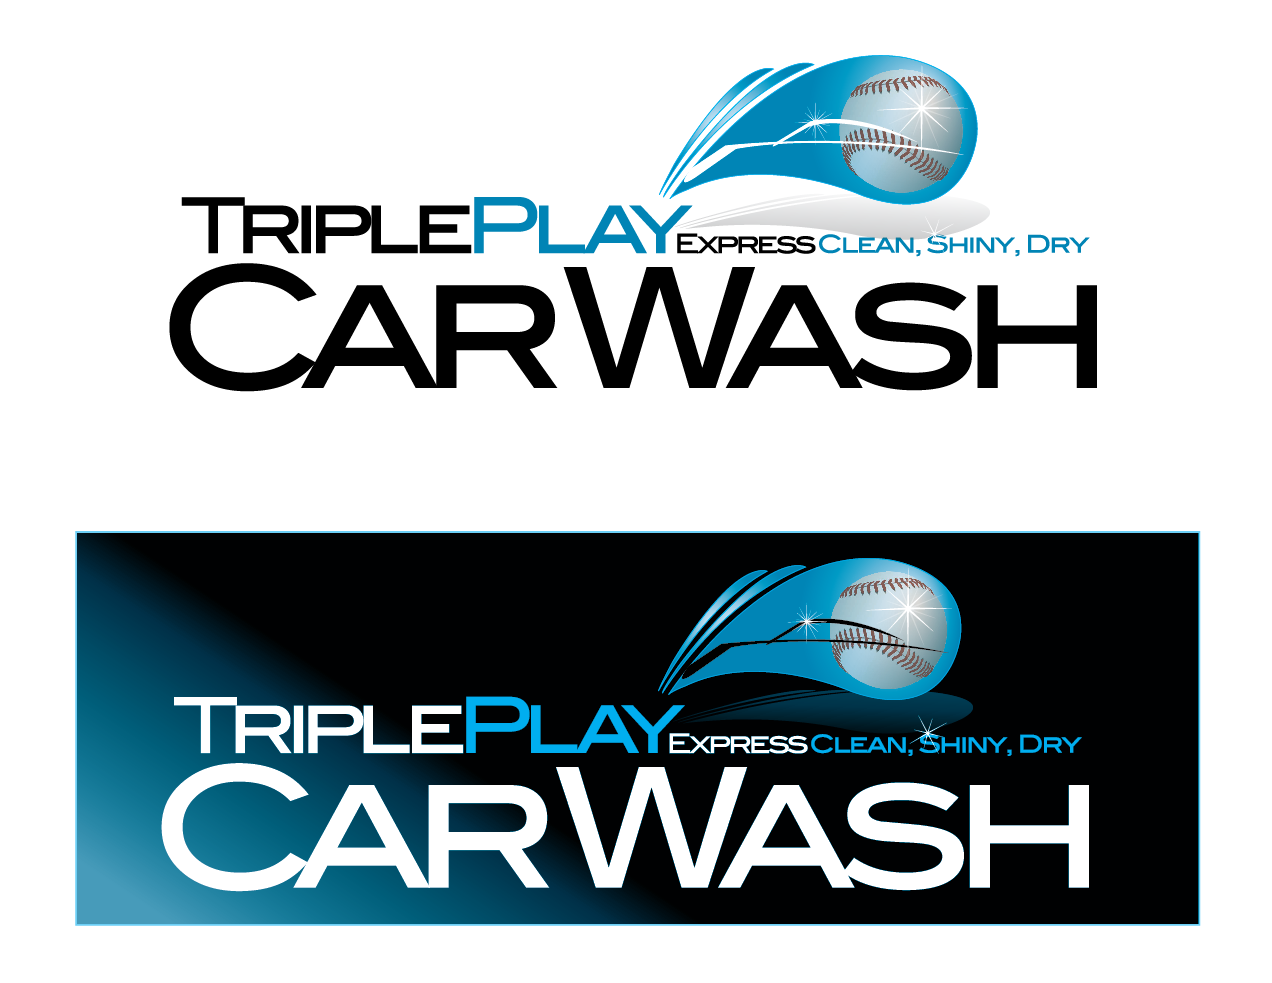 elegant playful logo design for triple play express car wash by rh designcrowd com car wash logo design inspiration car wash logo design inspiration